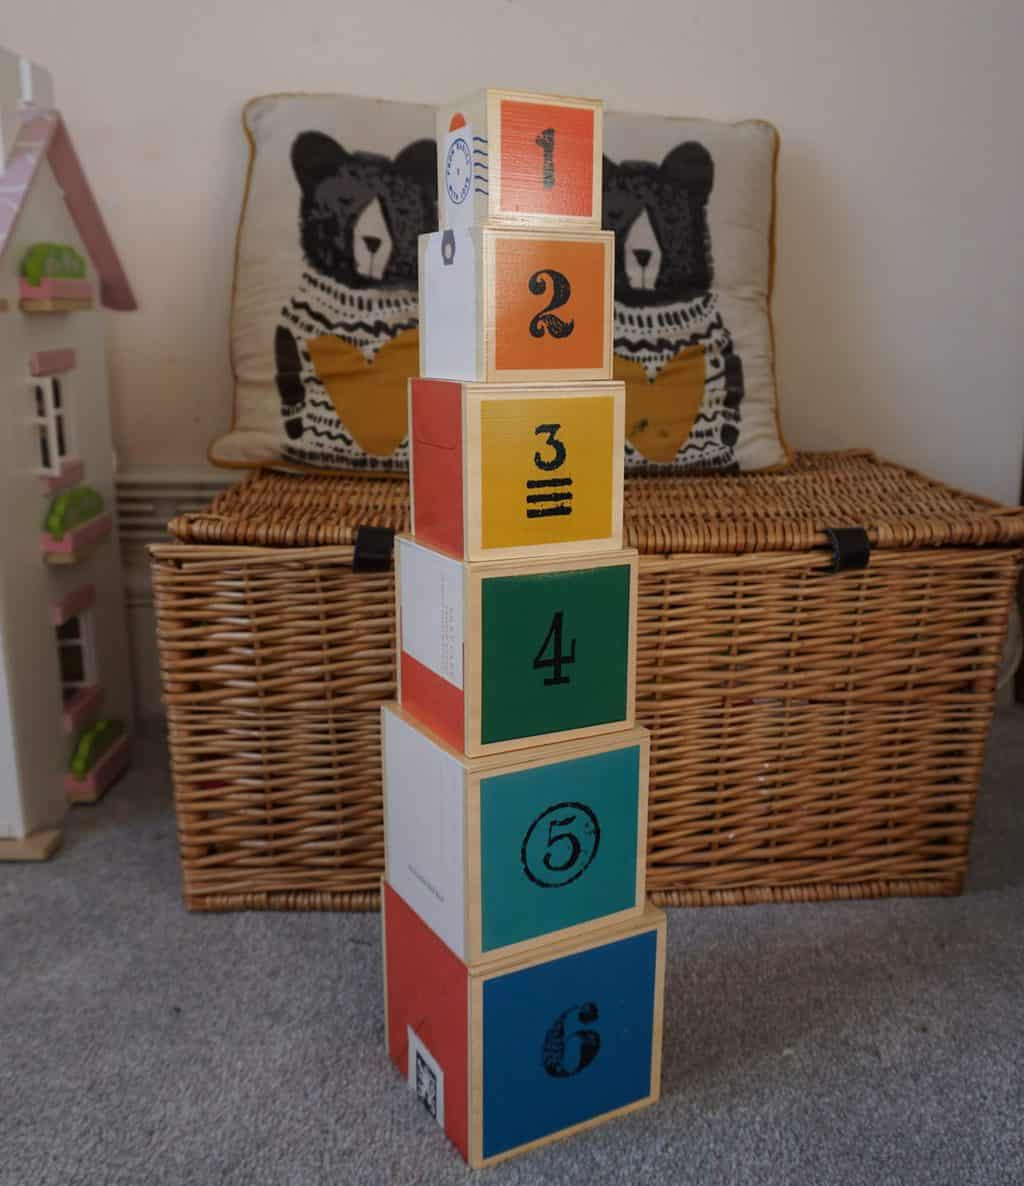 Rockin Baby wooden stacking blocks